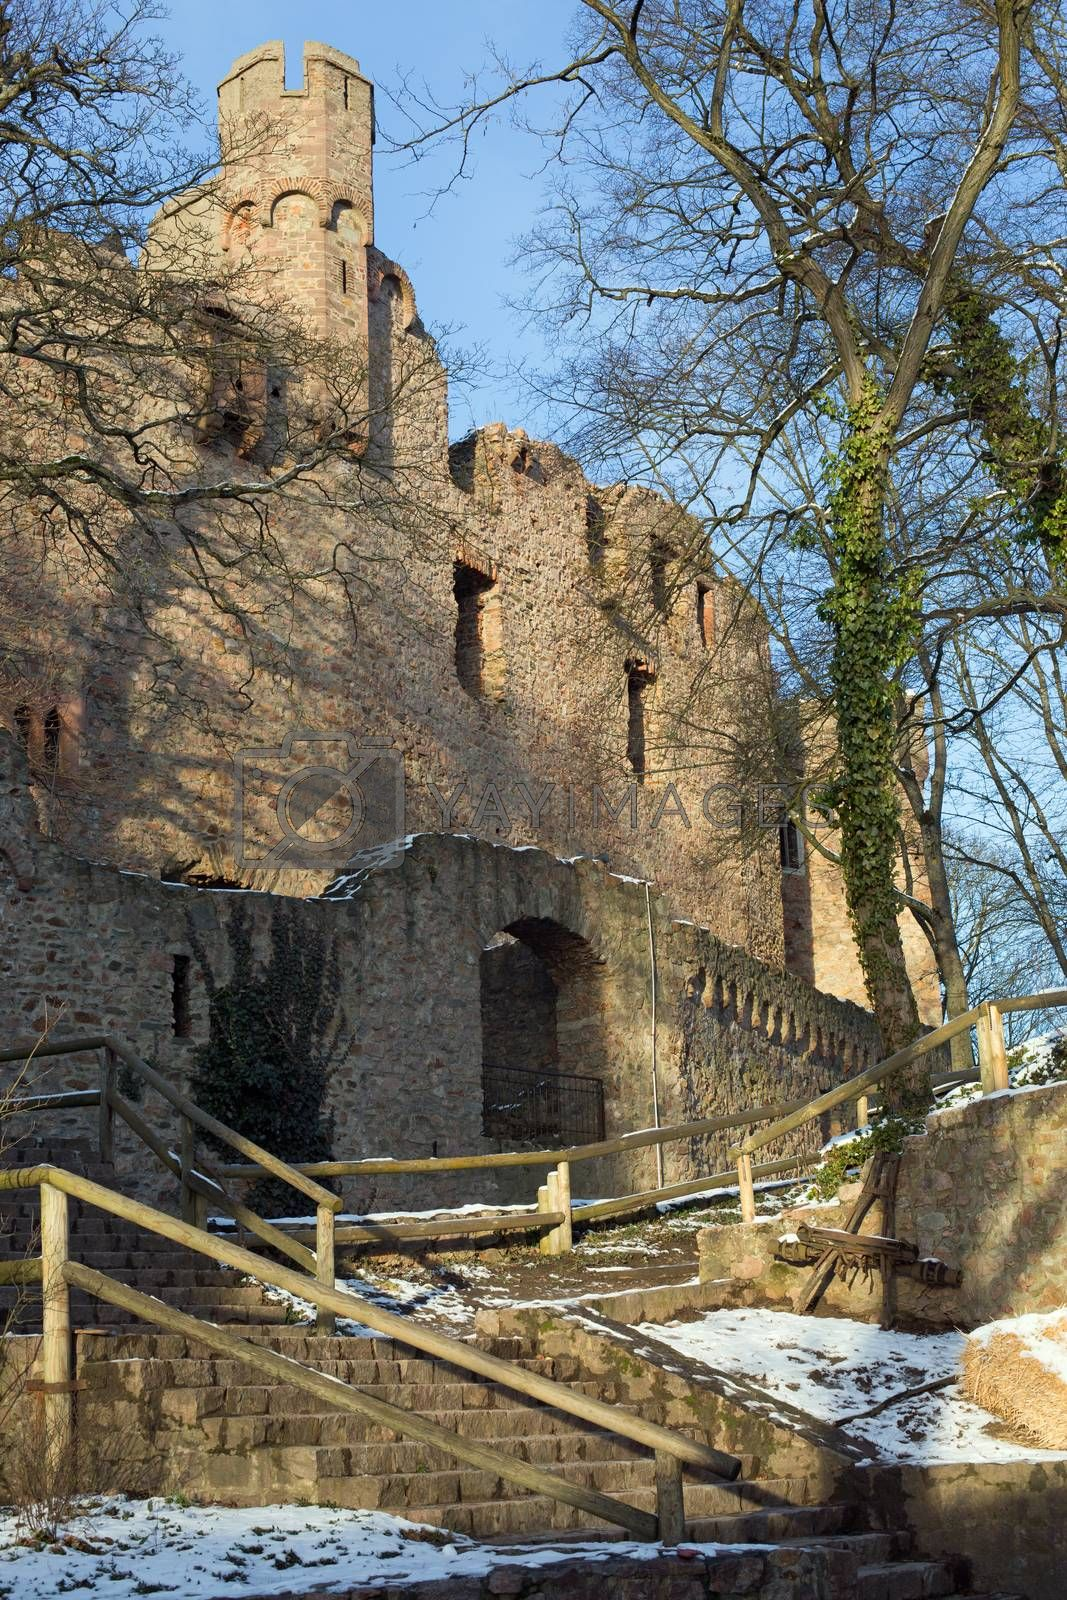 Royalty free image of Ruins castle Auerbach (Auerbacher castle) by HdDesign